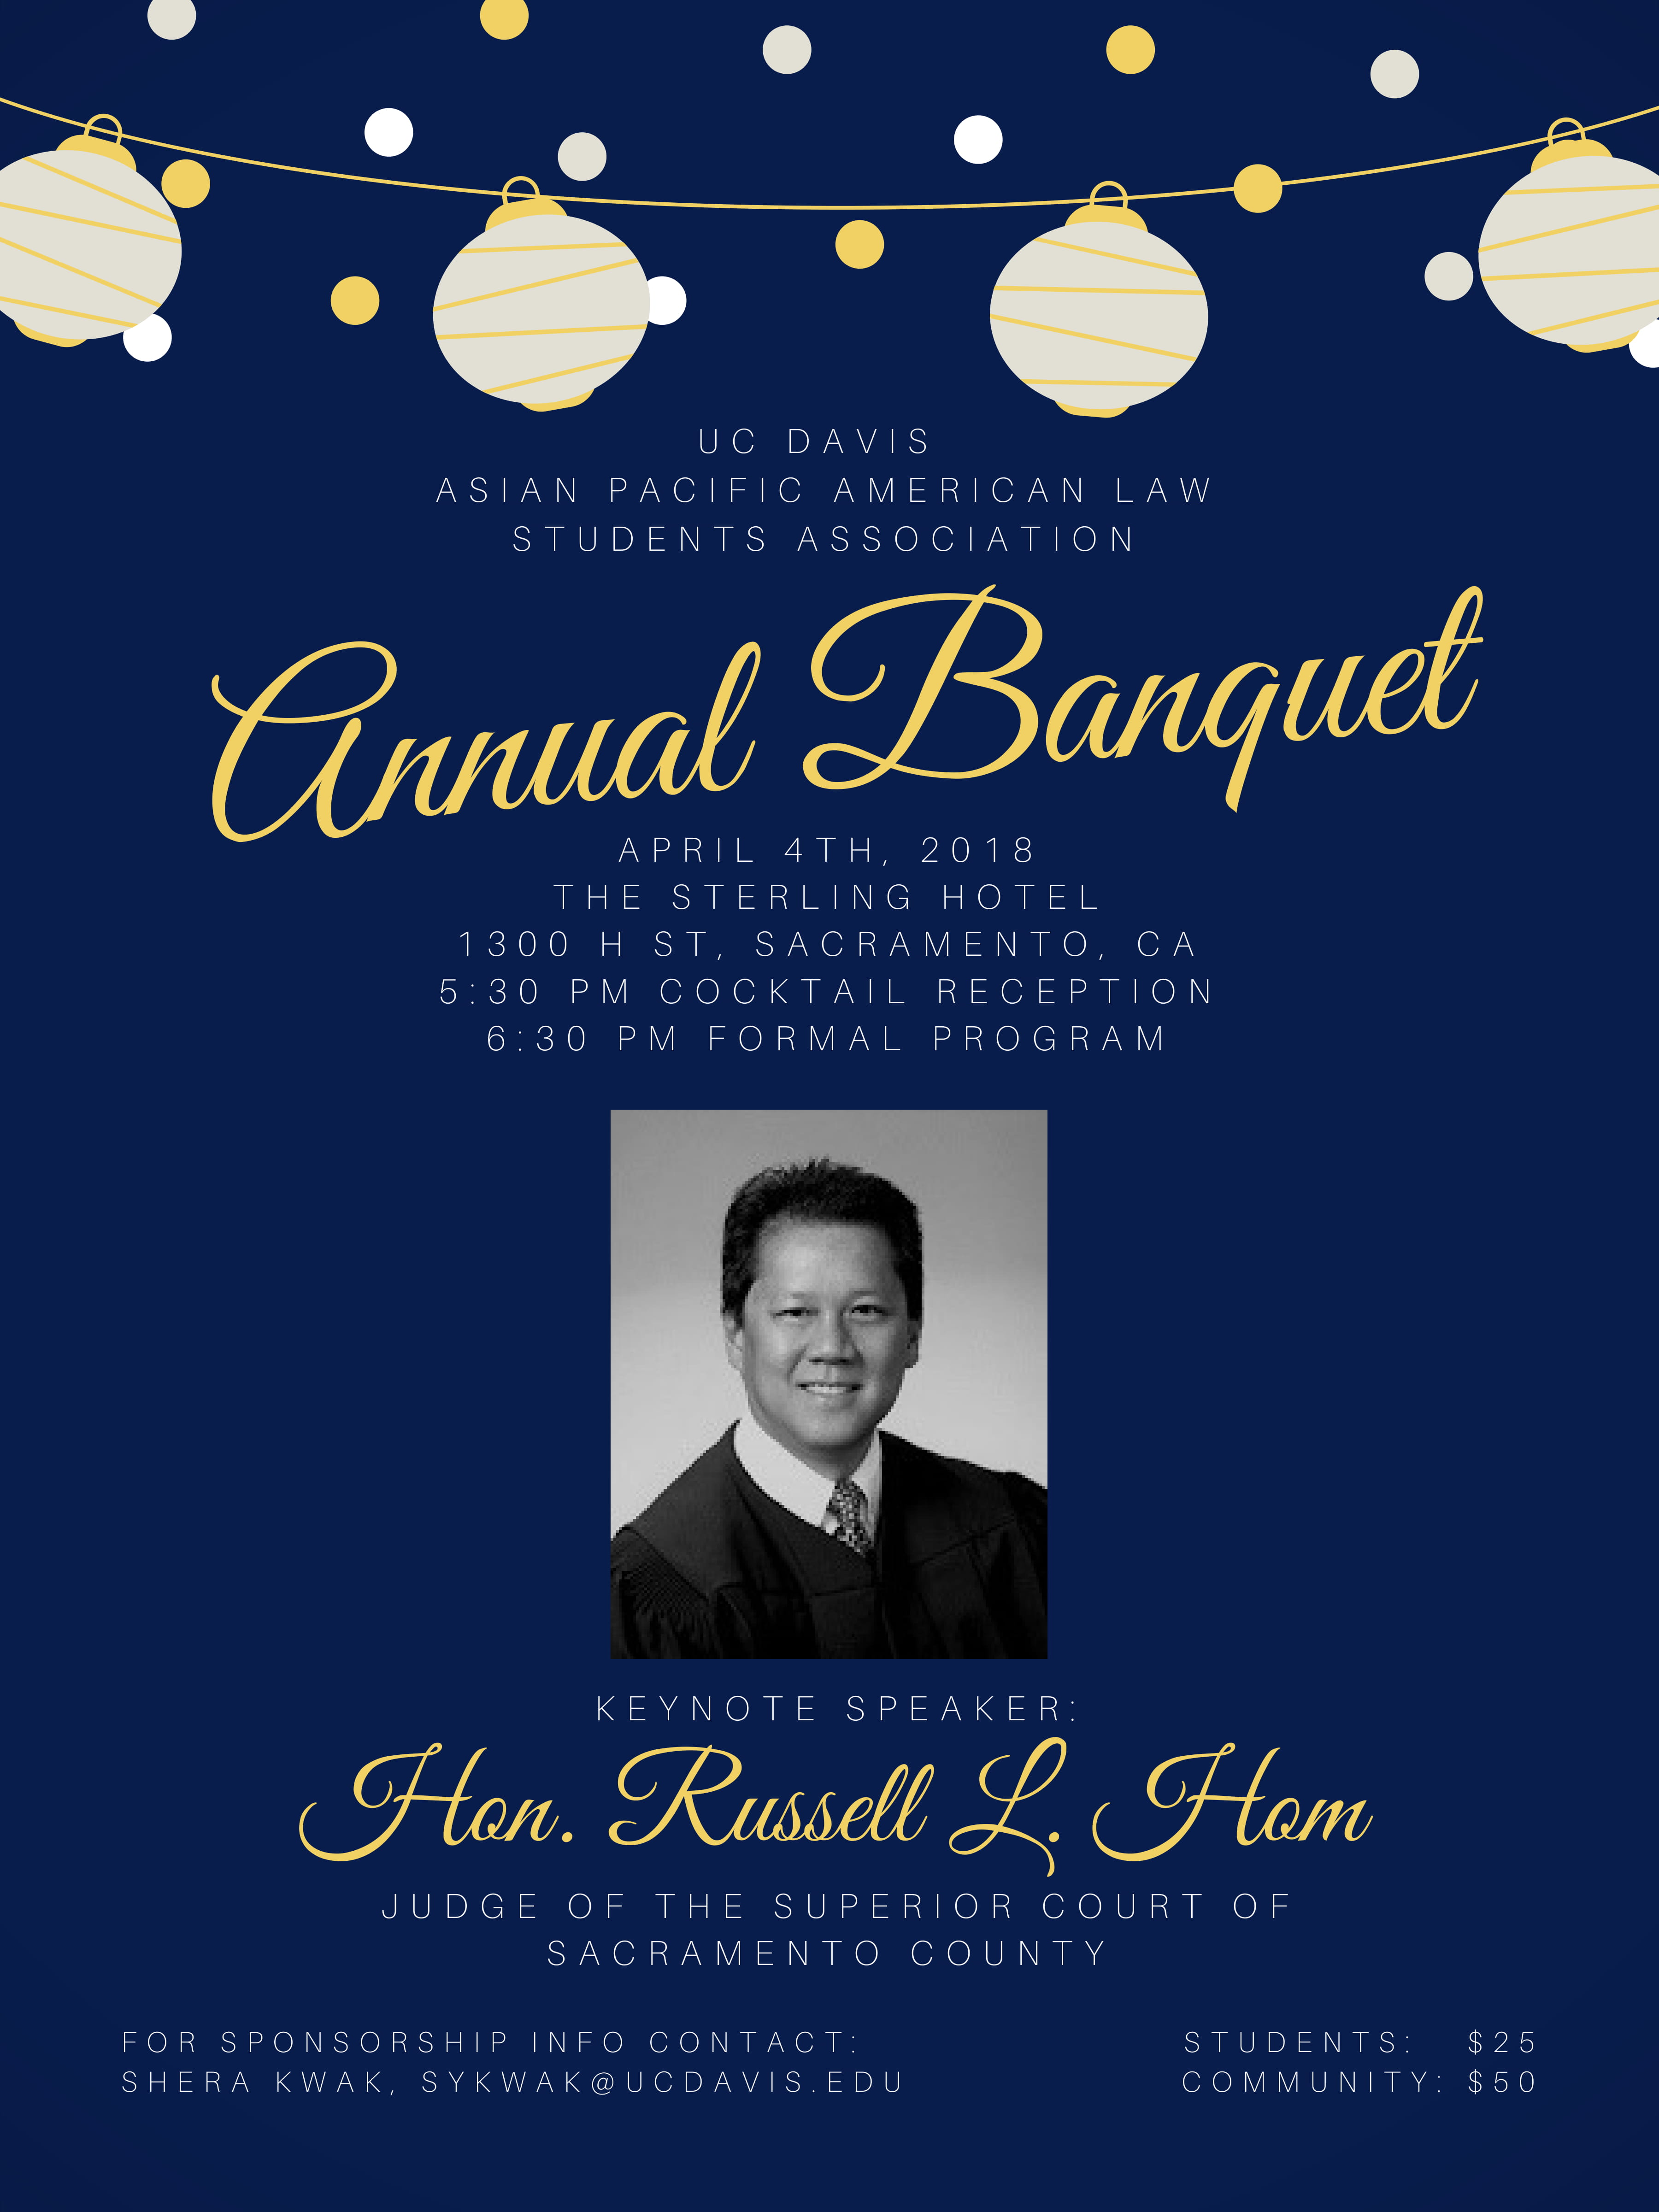 uc davis school of law apalsa banquet